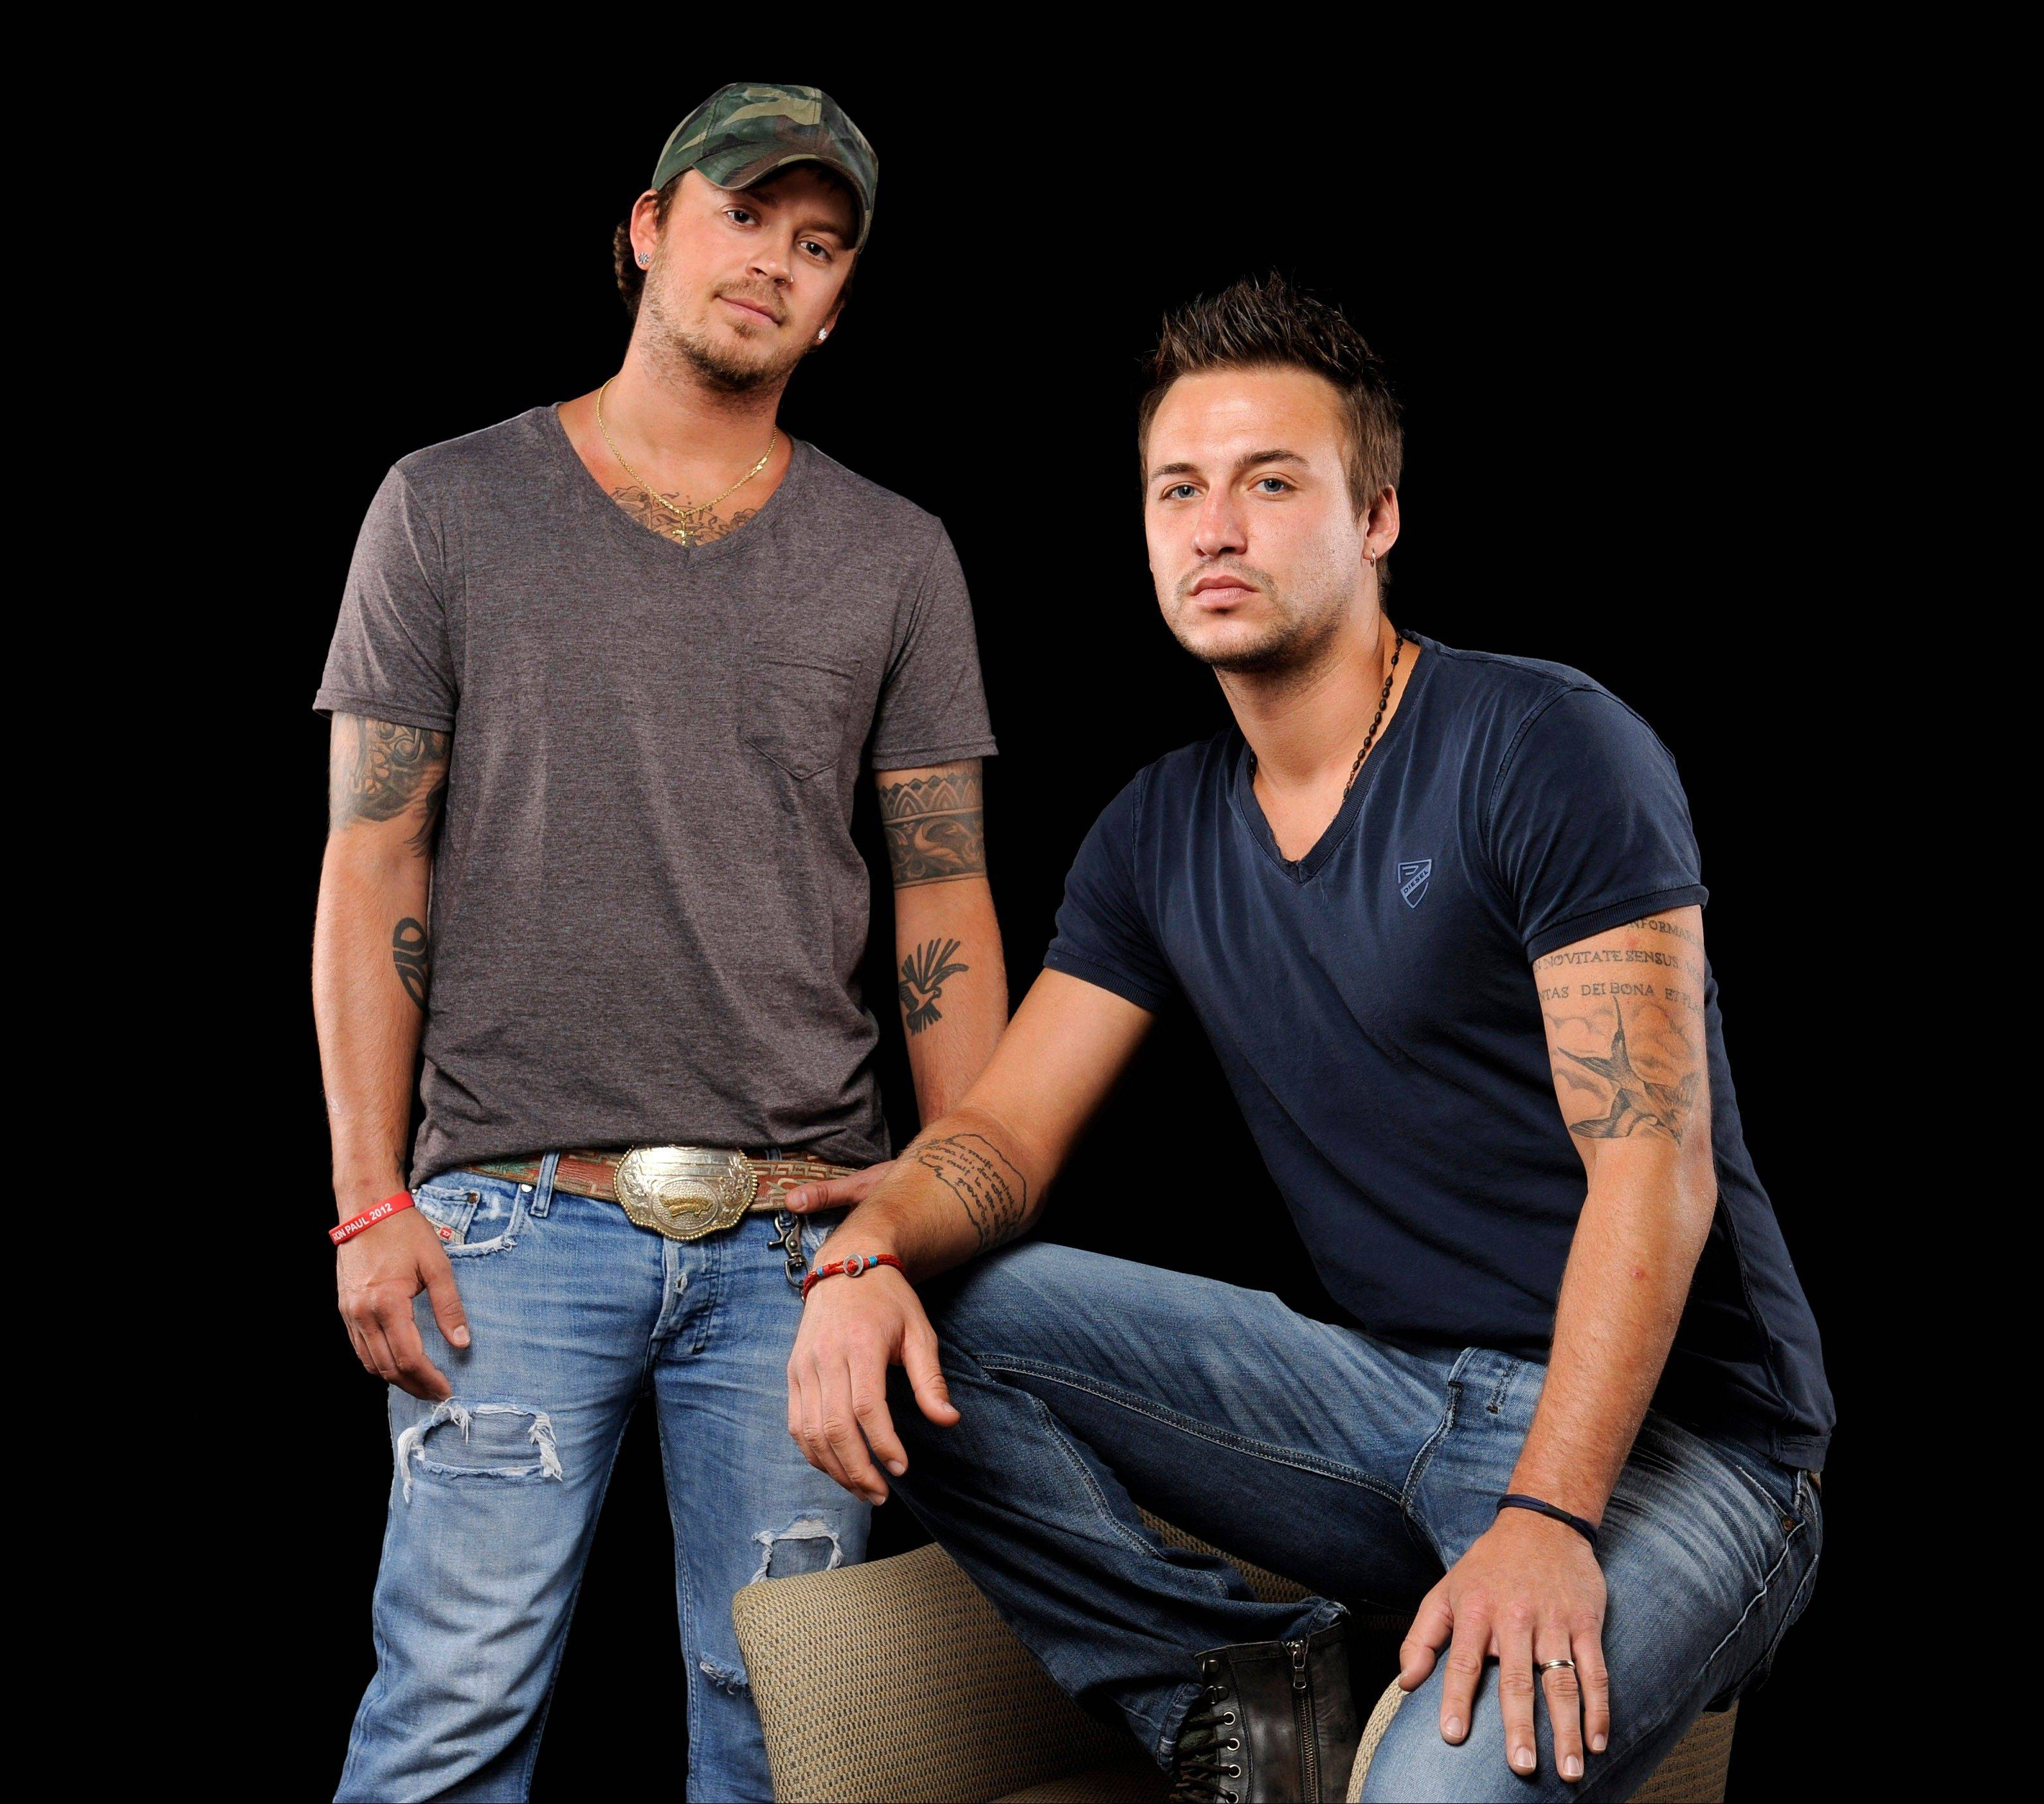 The self-titled second album for country music duo Love and Theft — Stephen Barker Liles, left, and Eric Gunderson — came out last month.